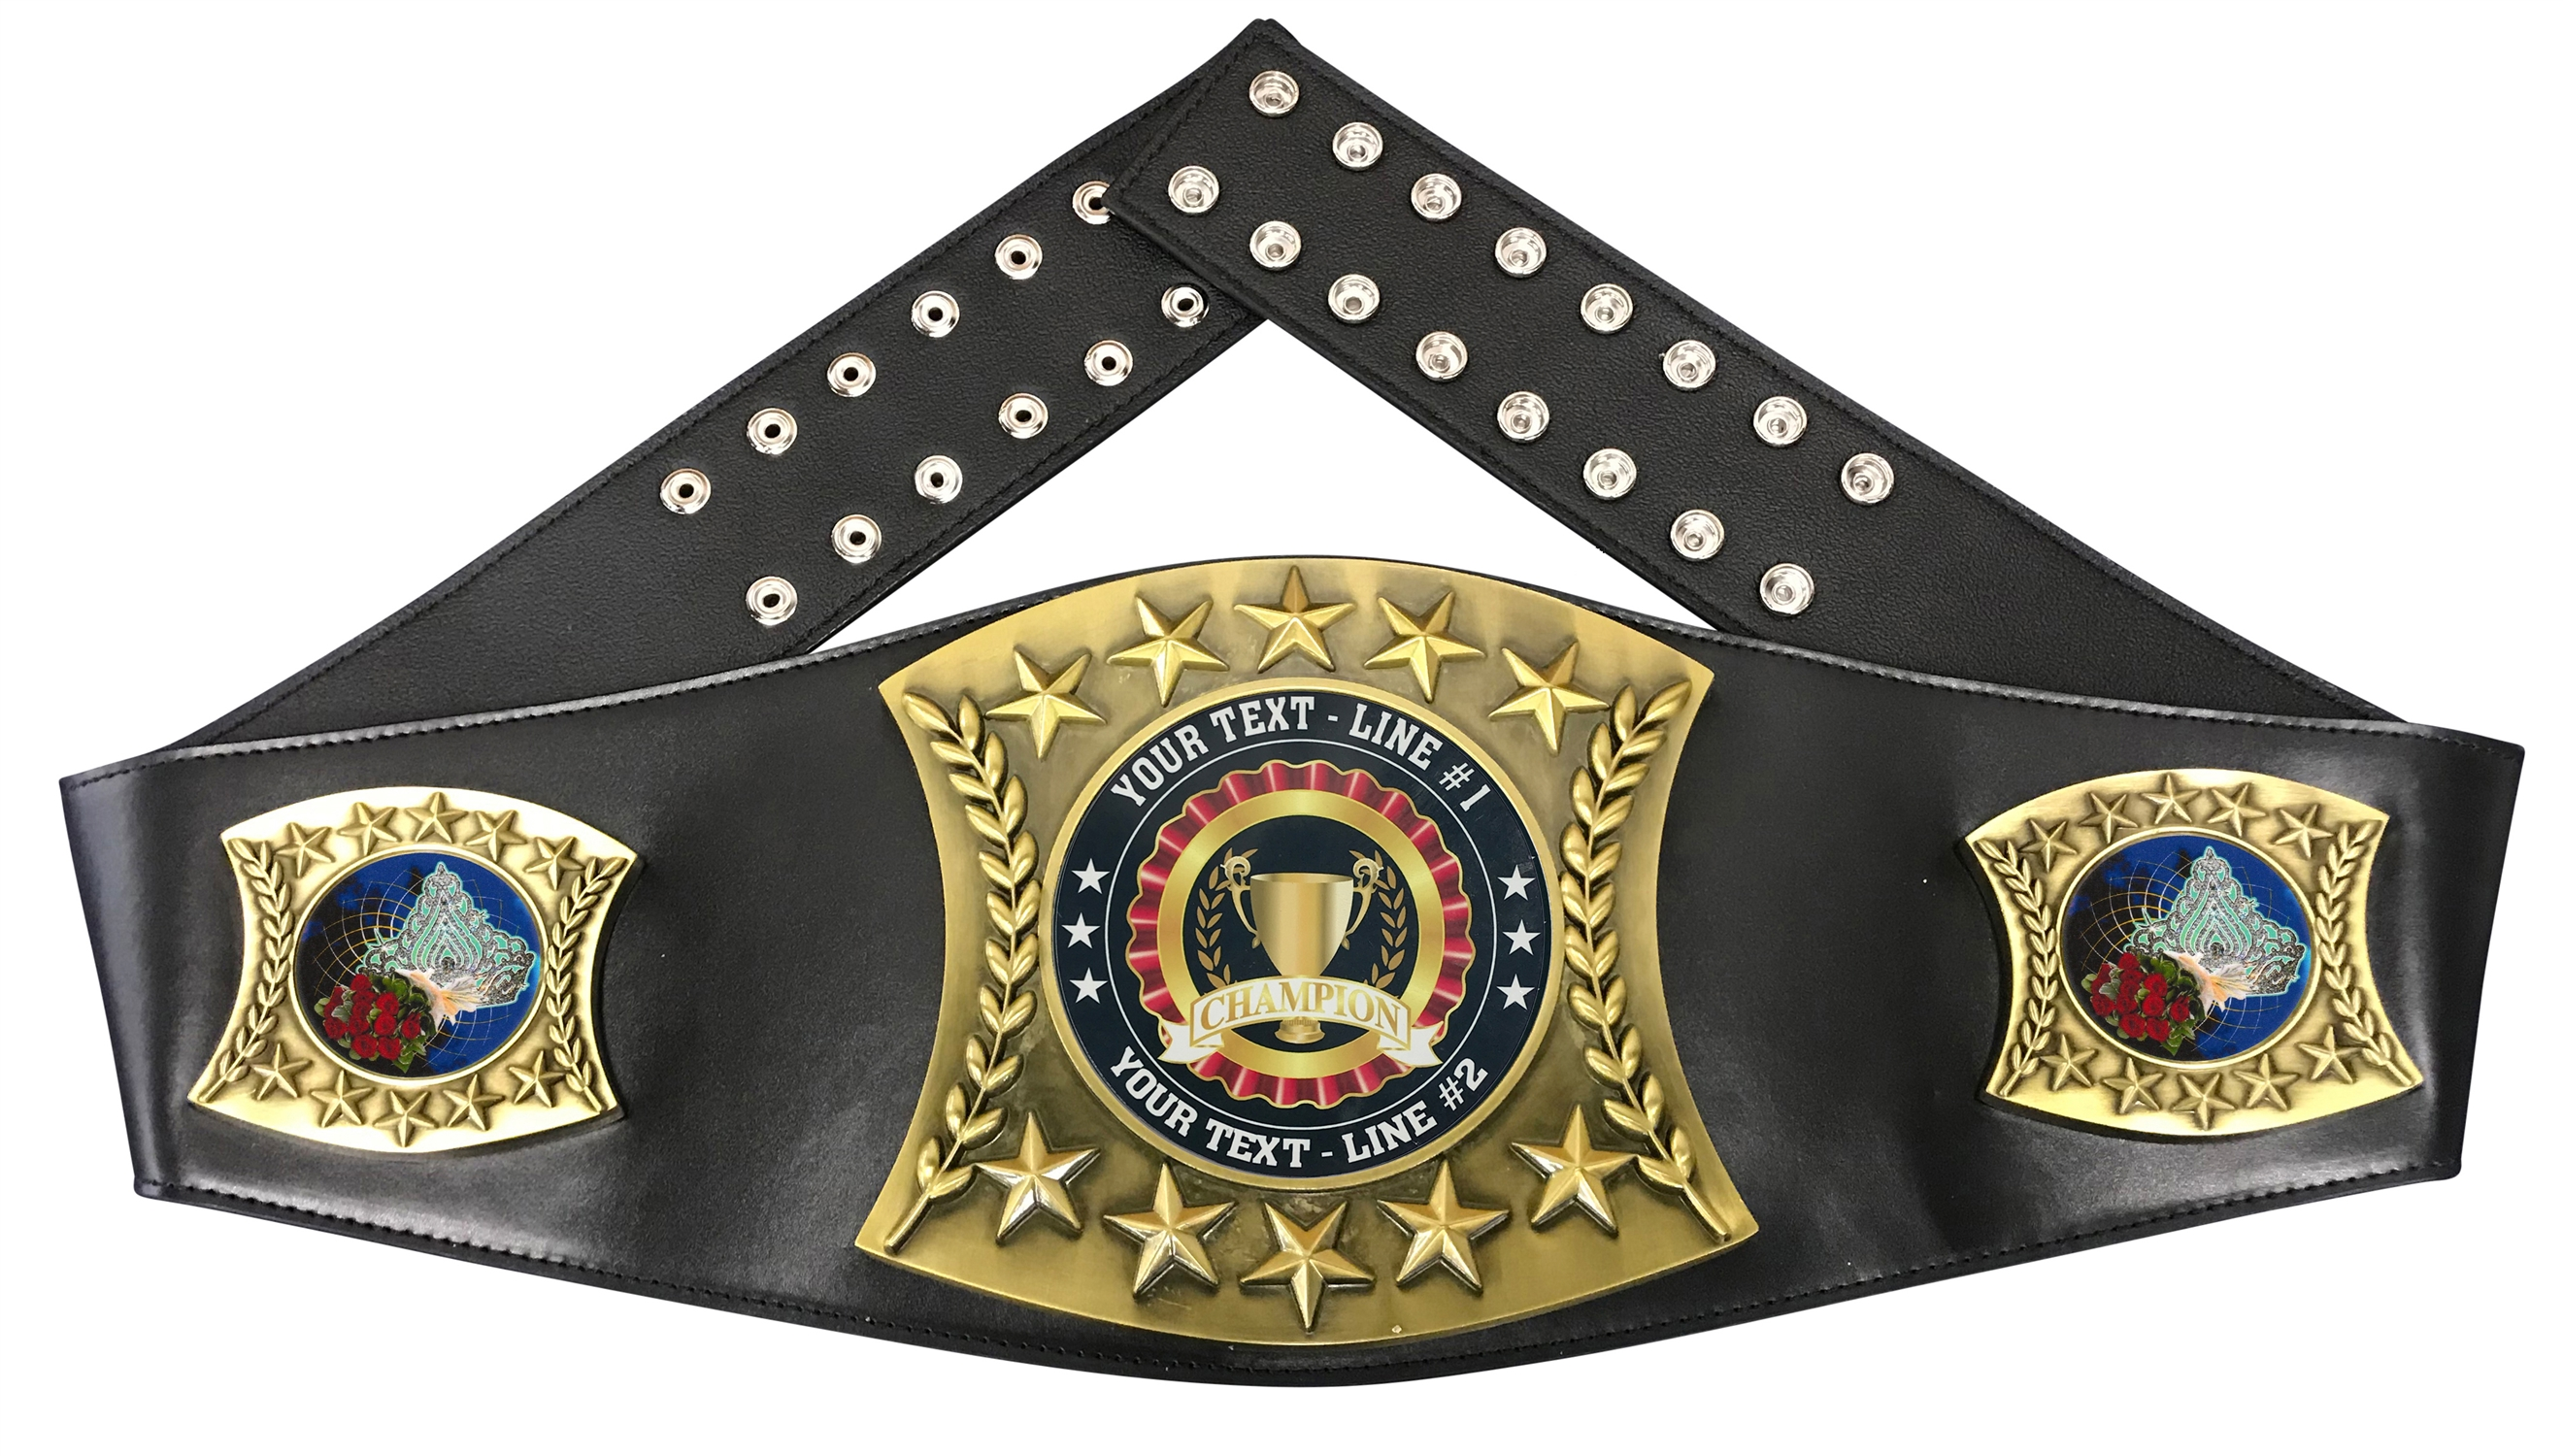 Beauty Queen Personalized Championship Leather Belt